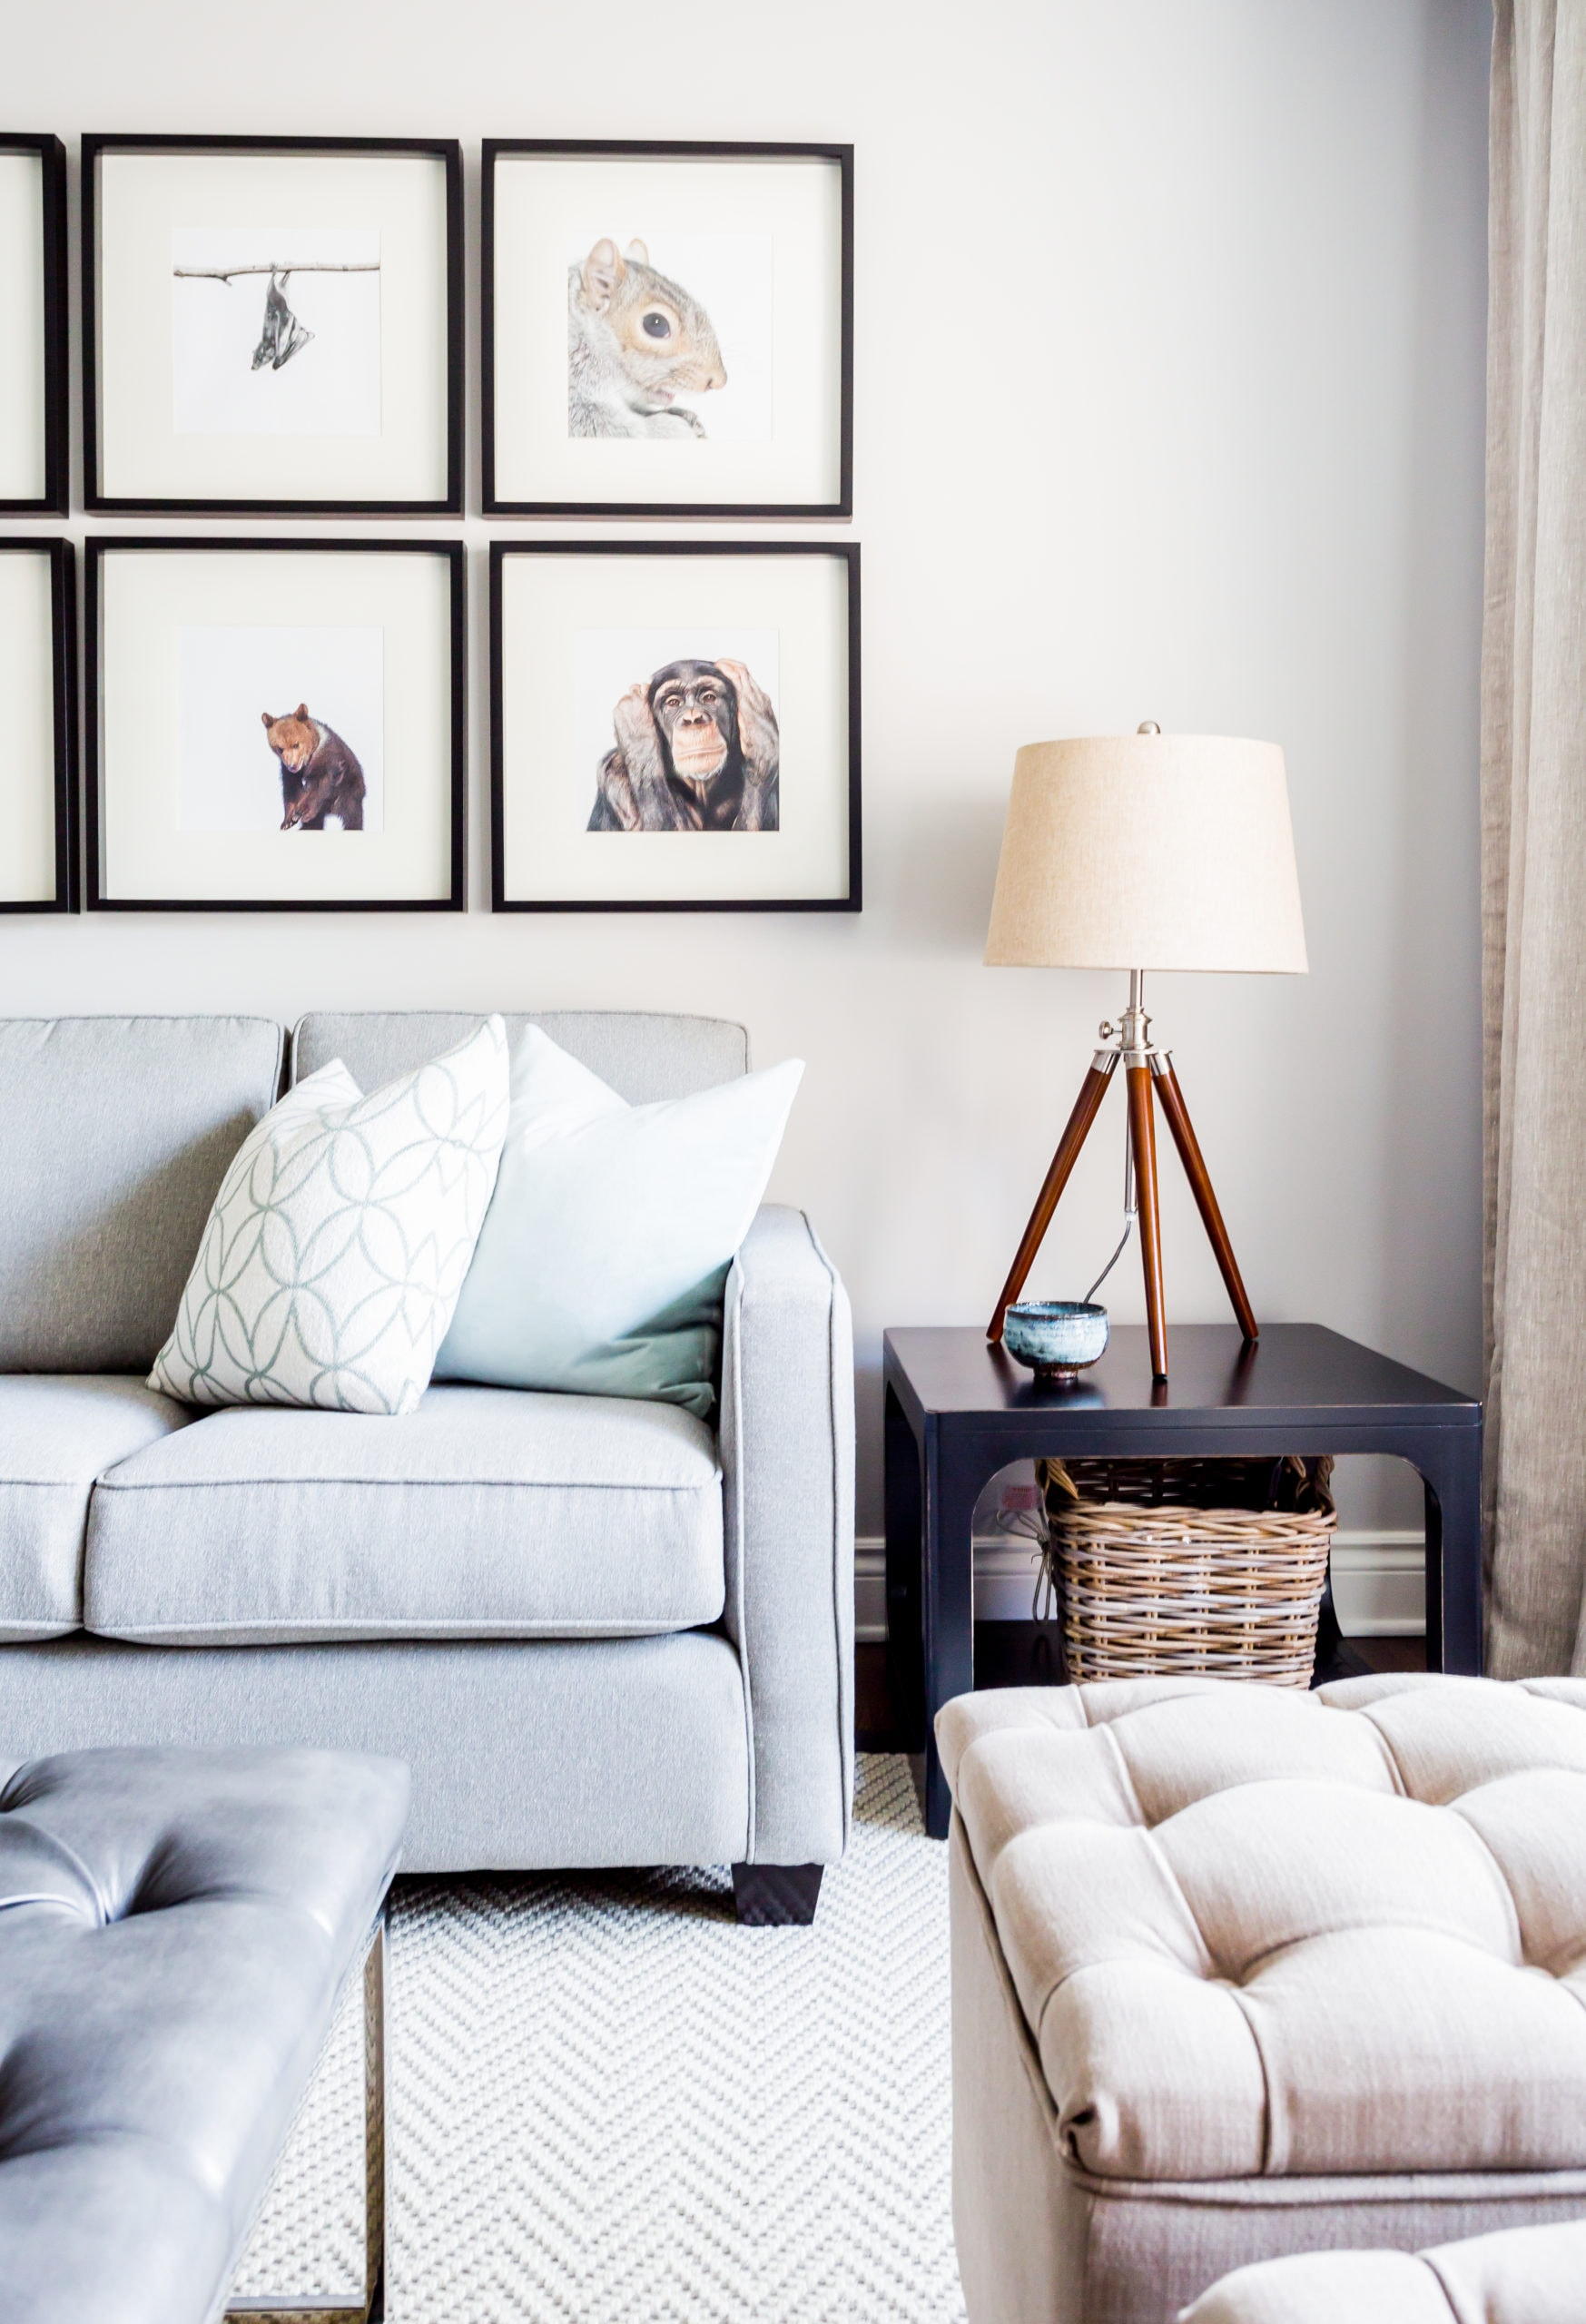 Living room containing various pictures of animals on the wall